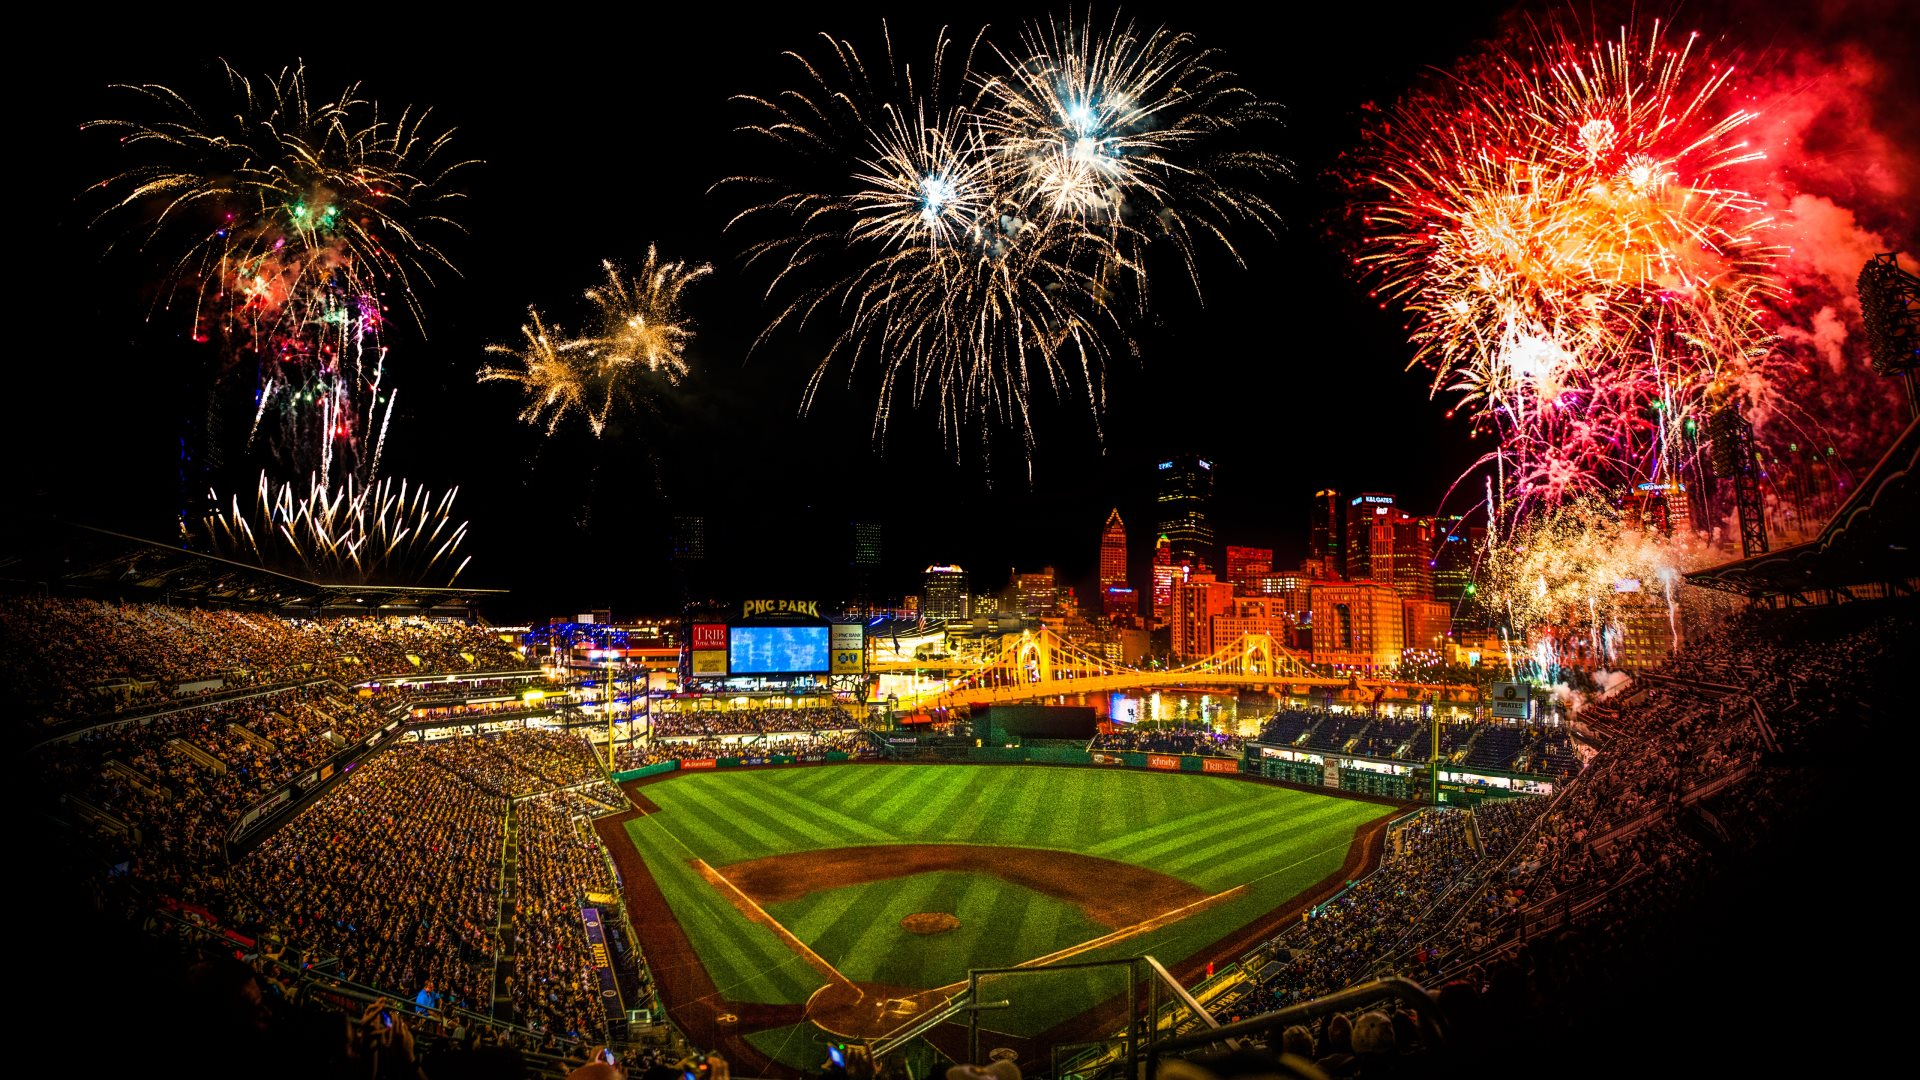 Best baseball stadiums mlb ballpark rankings top 5 for Baseball stadium mural wallpaper